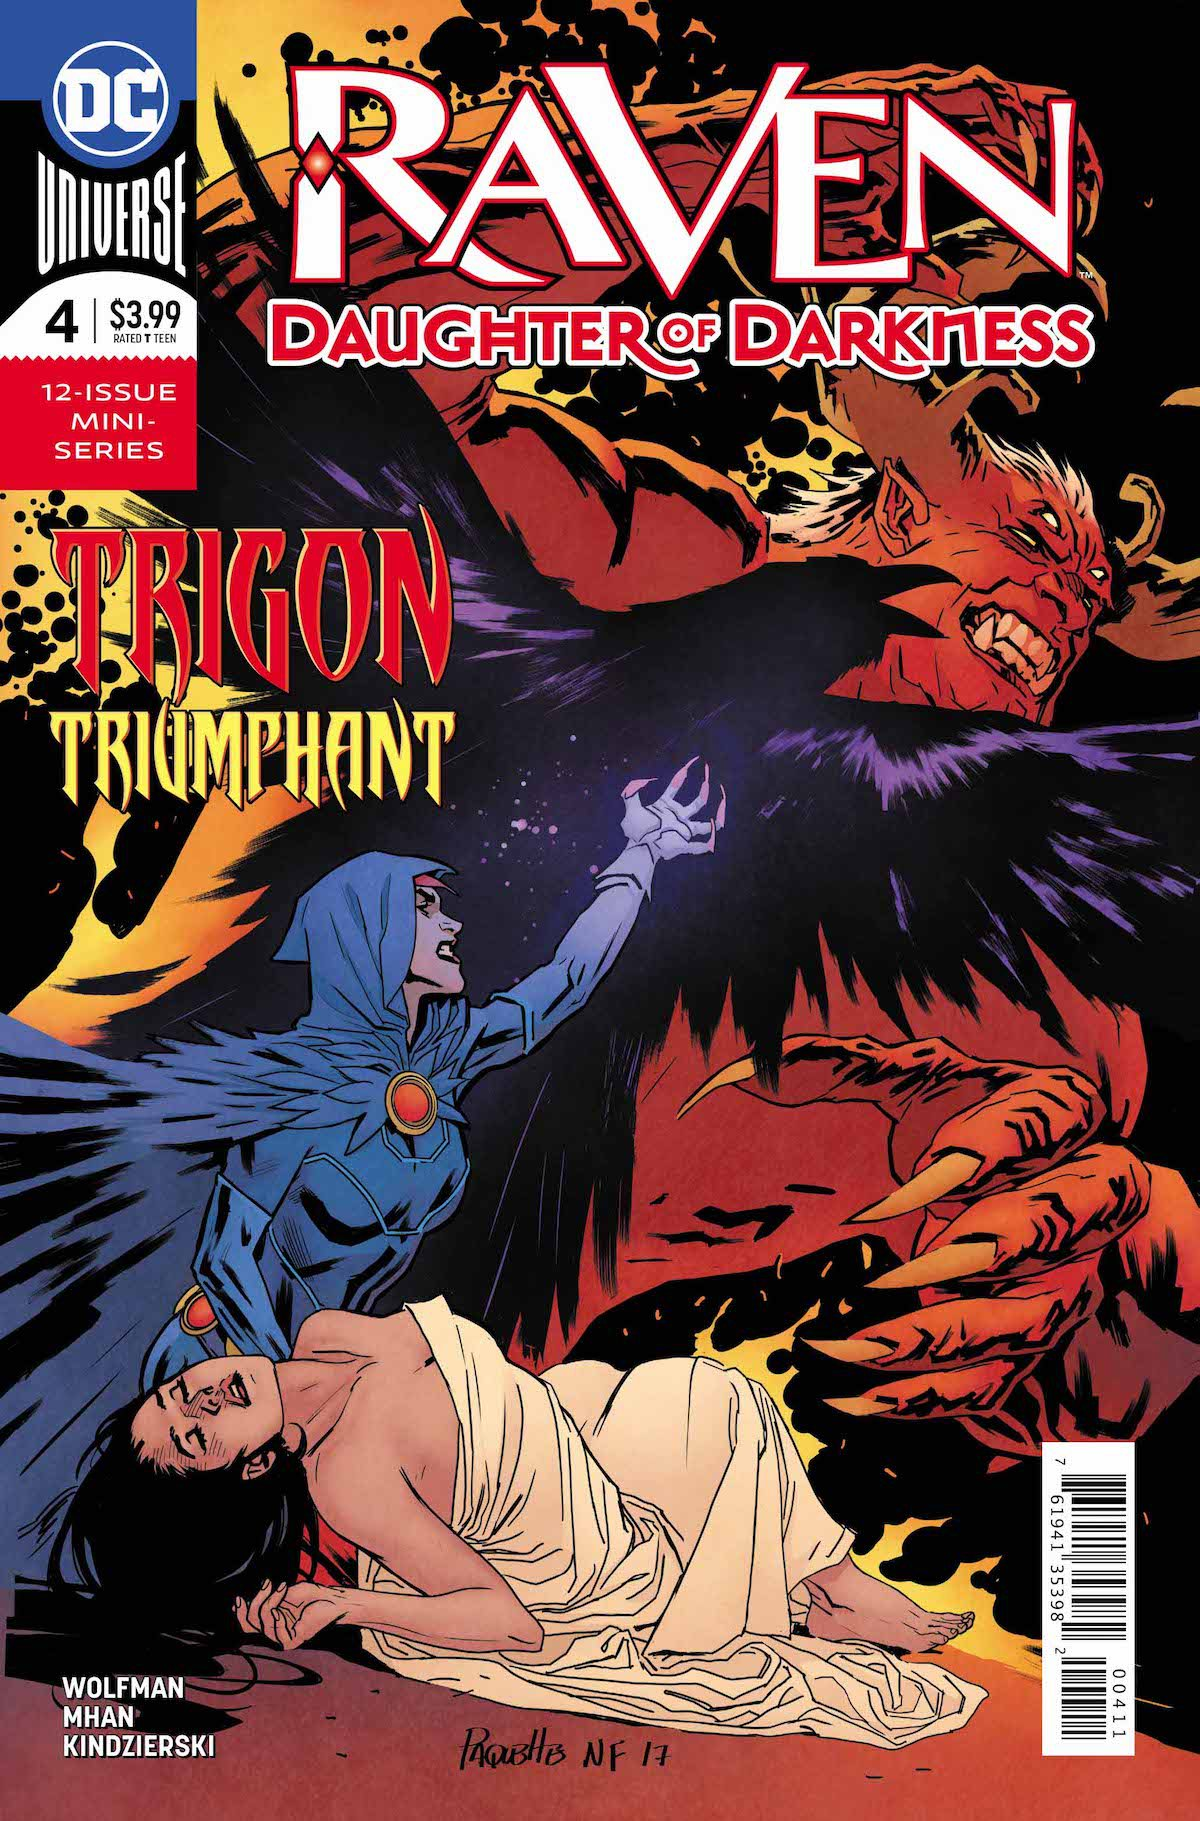 Raven Daughter of Darkness #4 cover